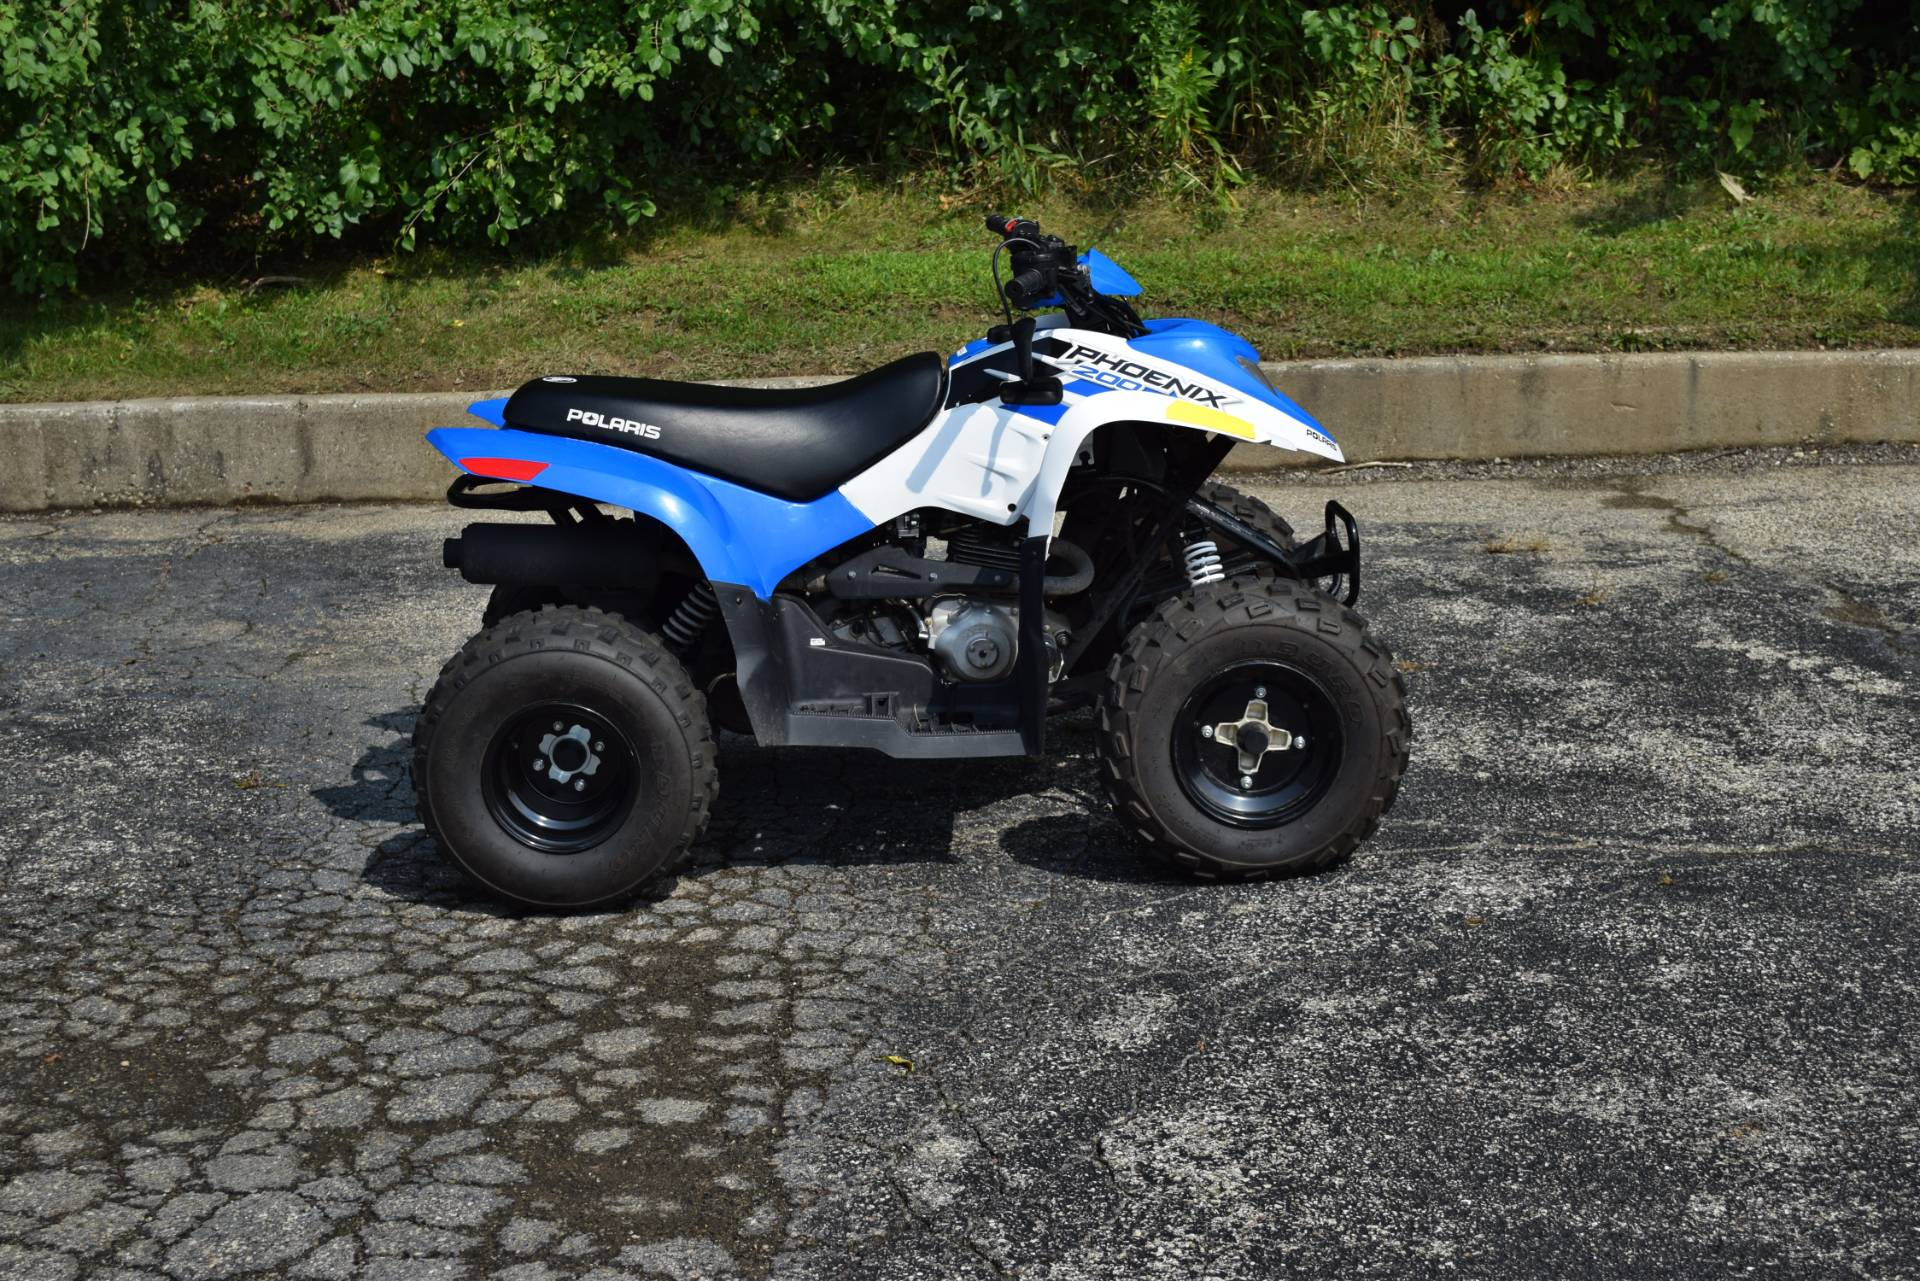 2016 Polaris Phoenix 200 in Wauconda, Illinois - Photo 1